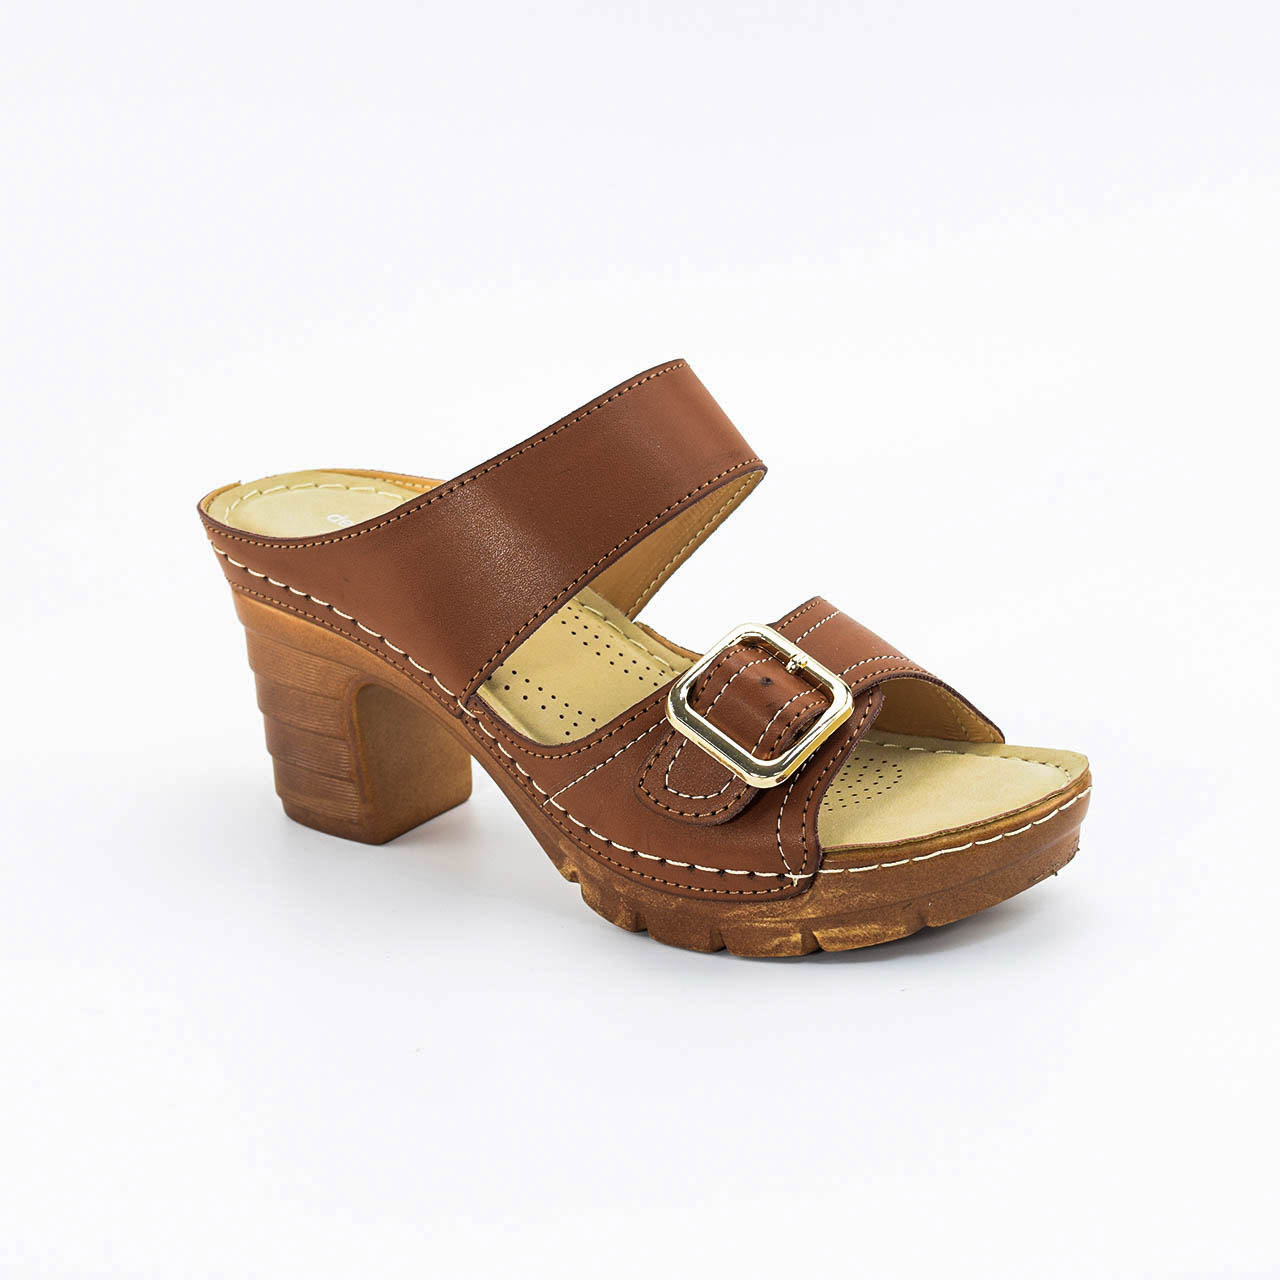 Claire Heels in Brown